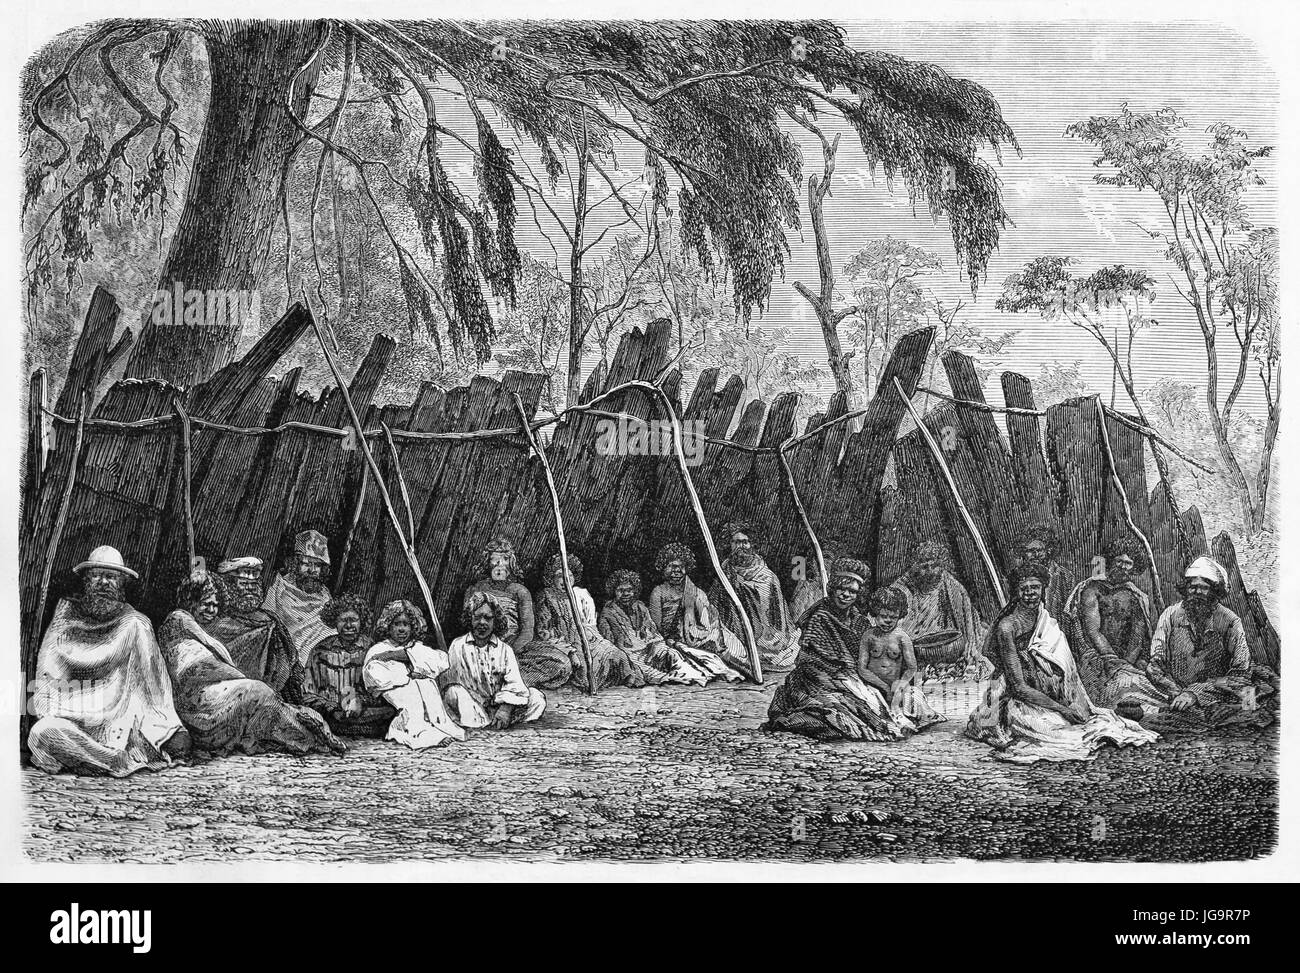 Old engraved portrait of Australian aboriginals camp. Created by Riou and Gusmand after photo of unknown author, - Stock Image